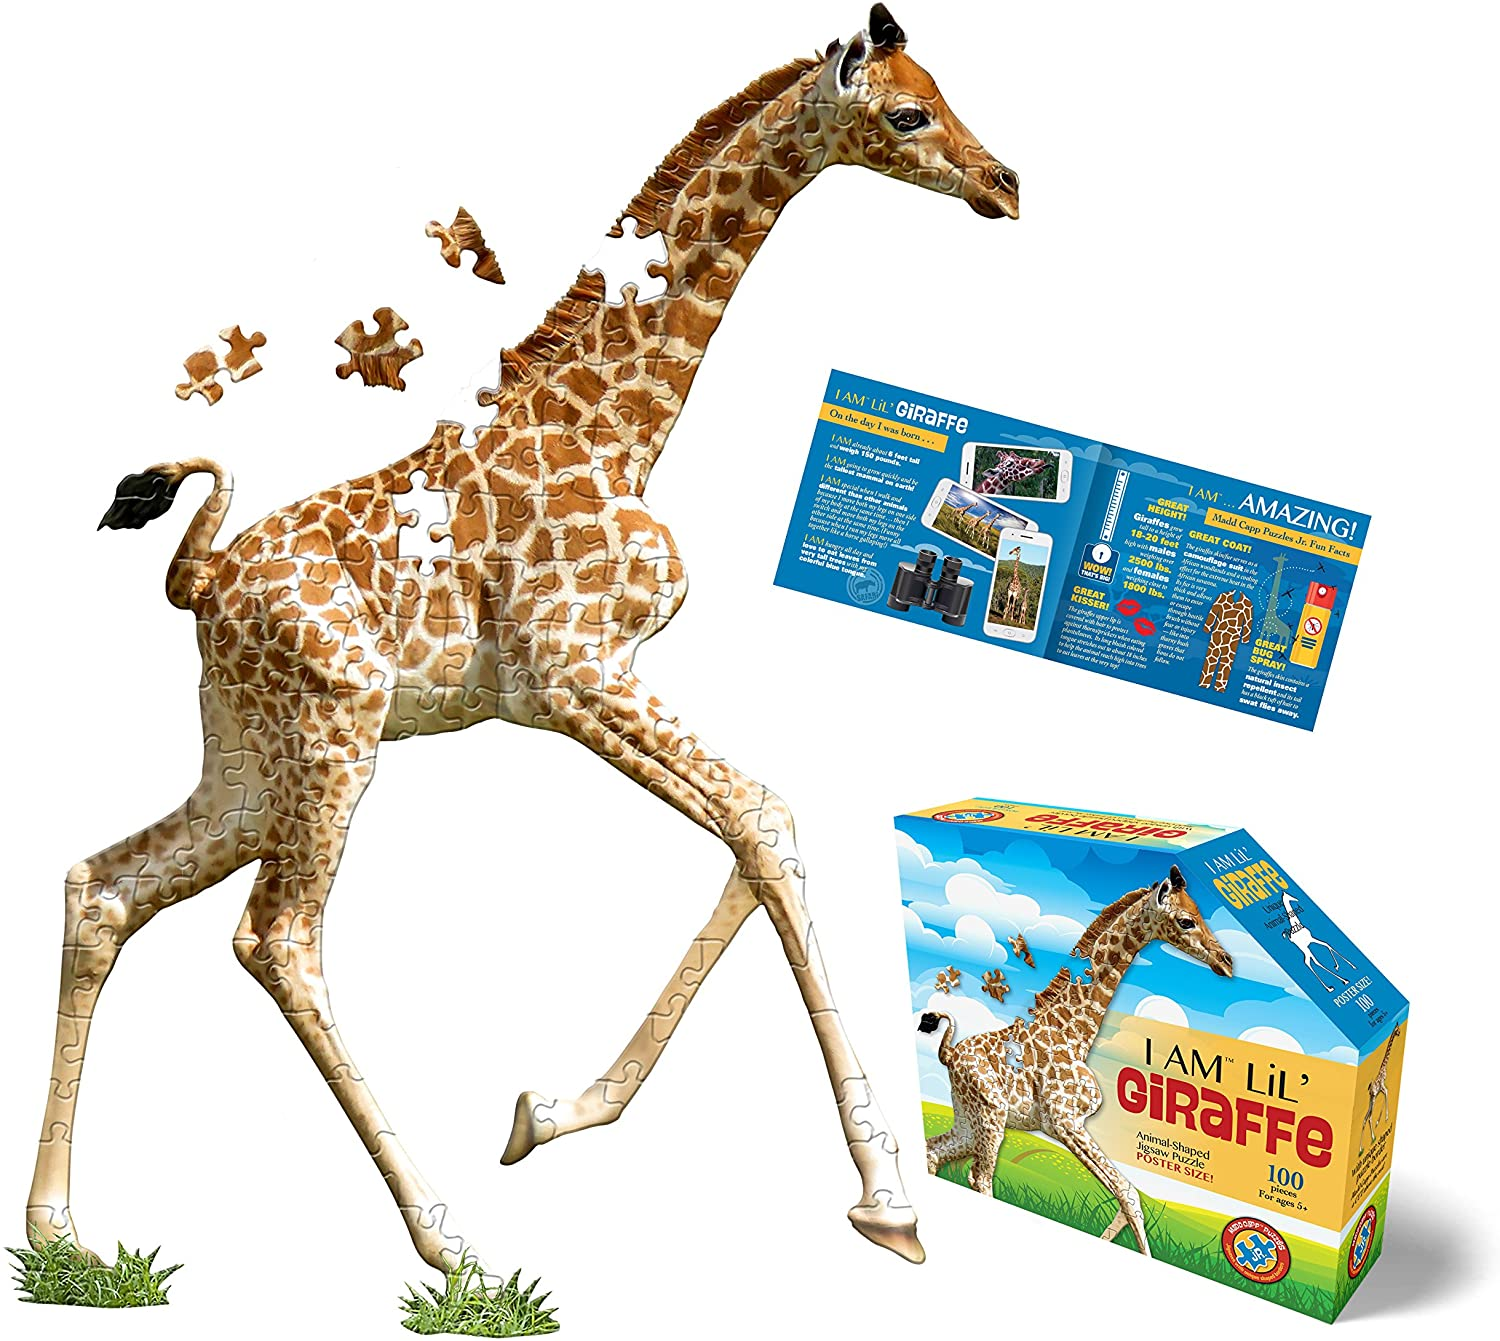 I am Lil' Giraffe 100 Pieces